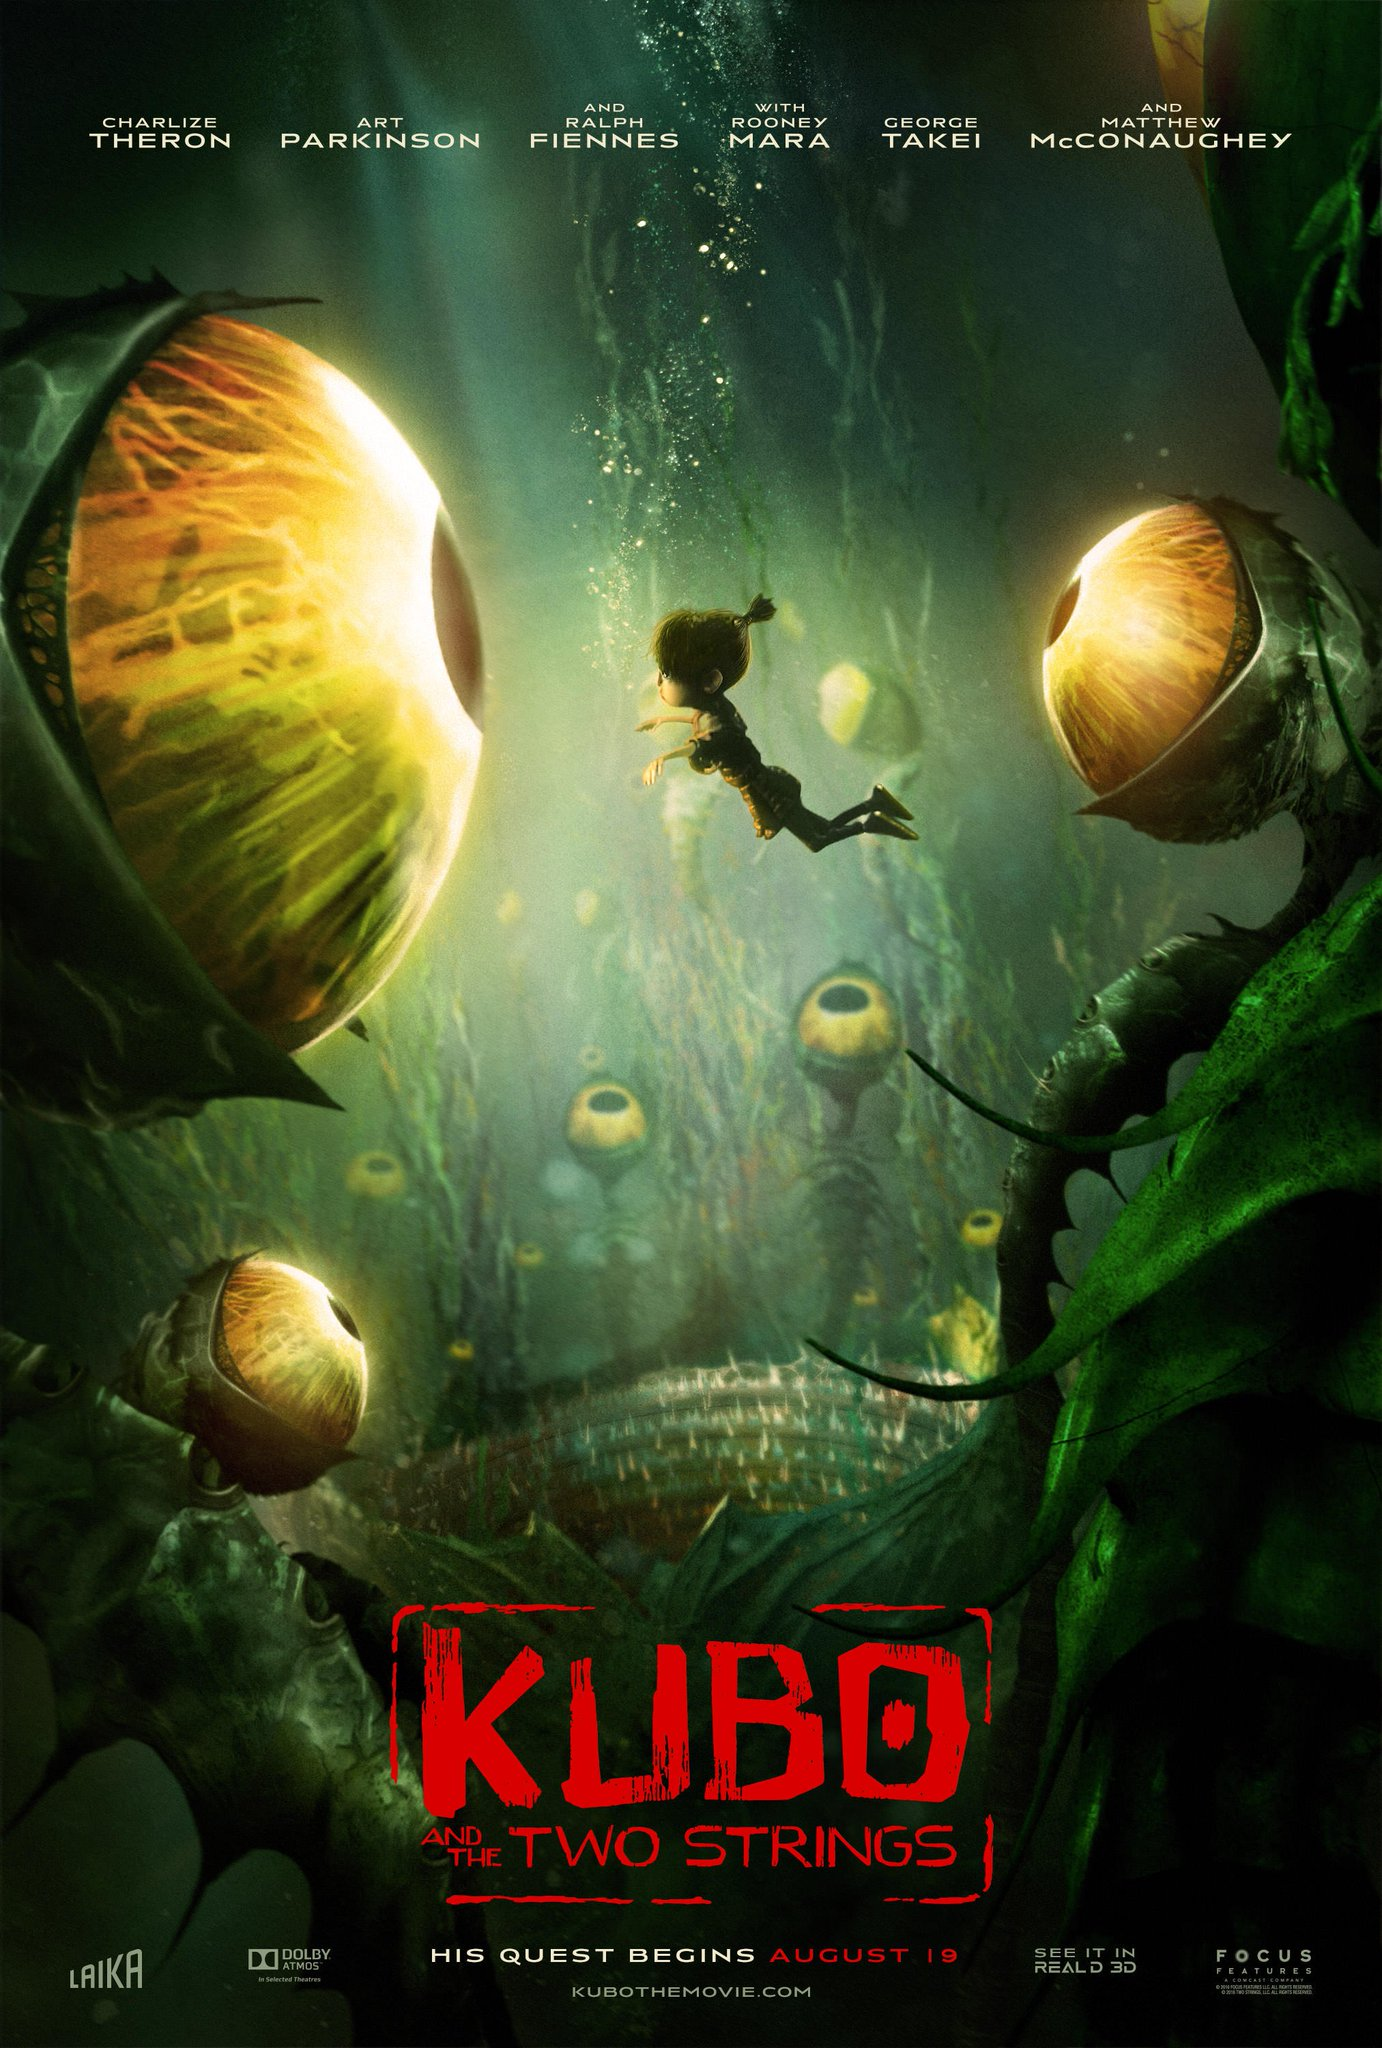 New Kubo and the Two Strings Trailer & Posters Revealed 3